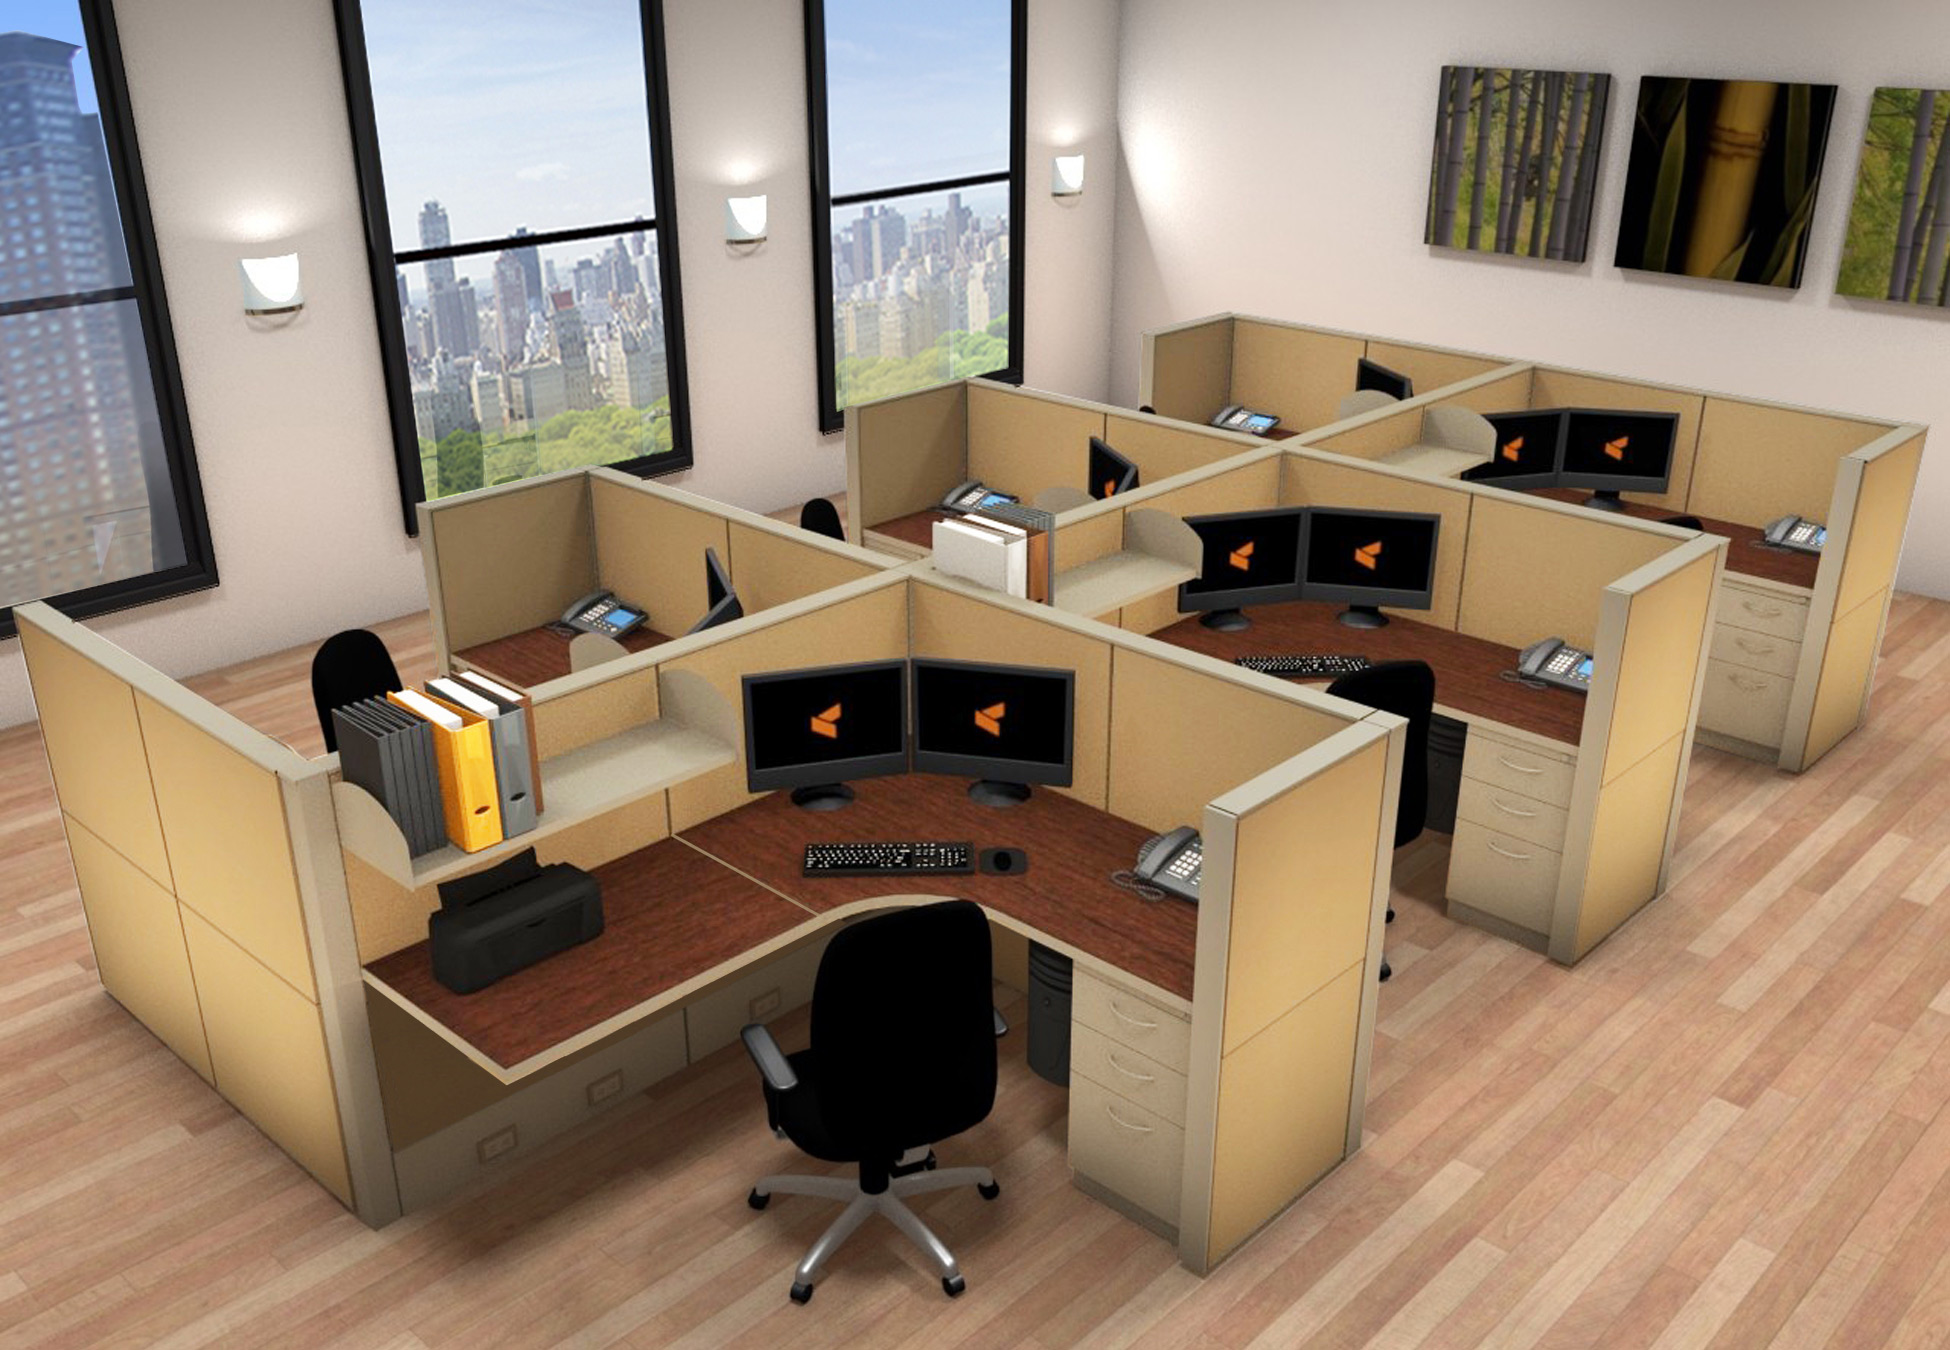 Office Work Stations 5x6 Cubicle Workstations Cubicle